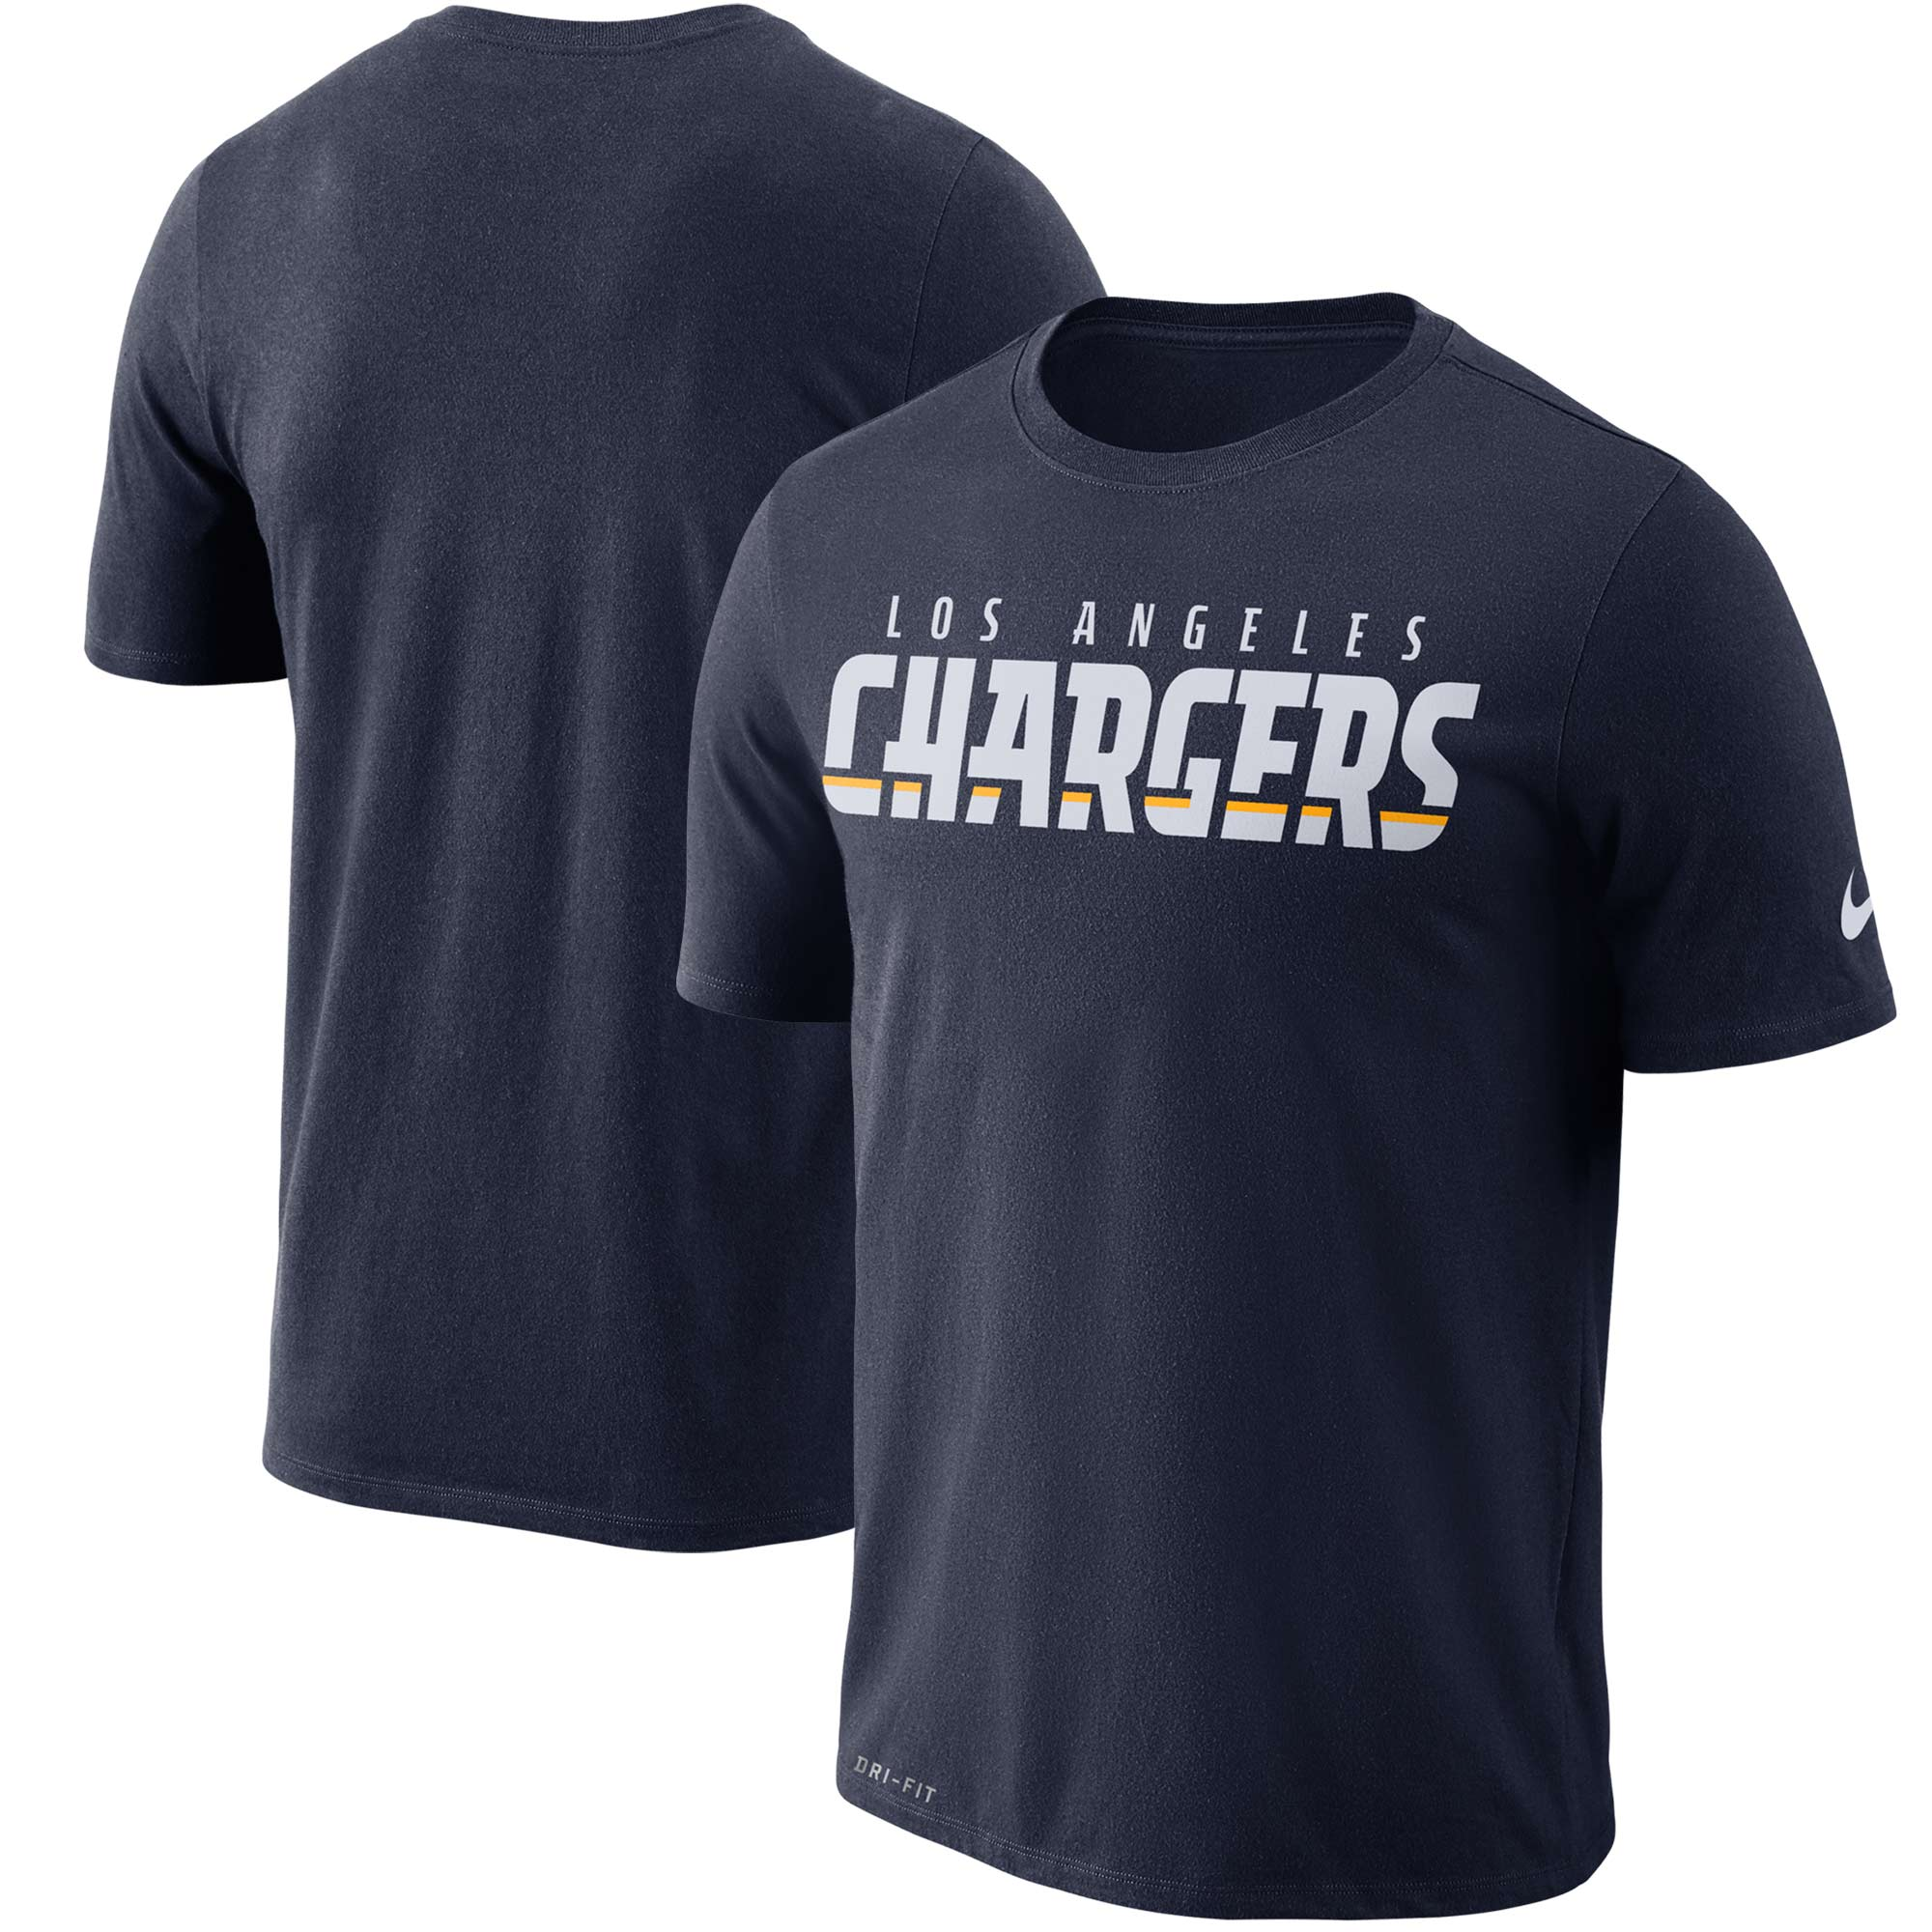 Los Angeles Chargers Nike Dri-FIT Cotton Essential Wordmark T-Shirt - Navy